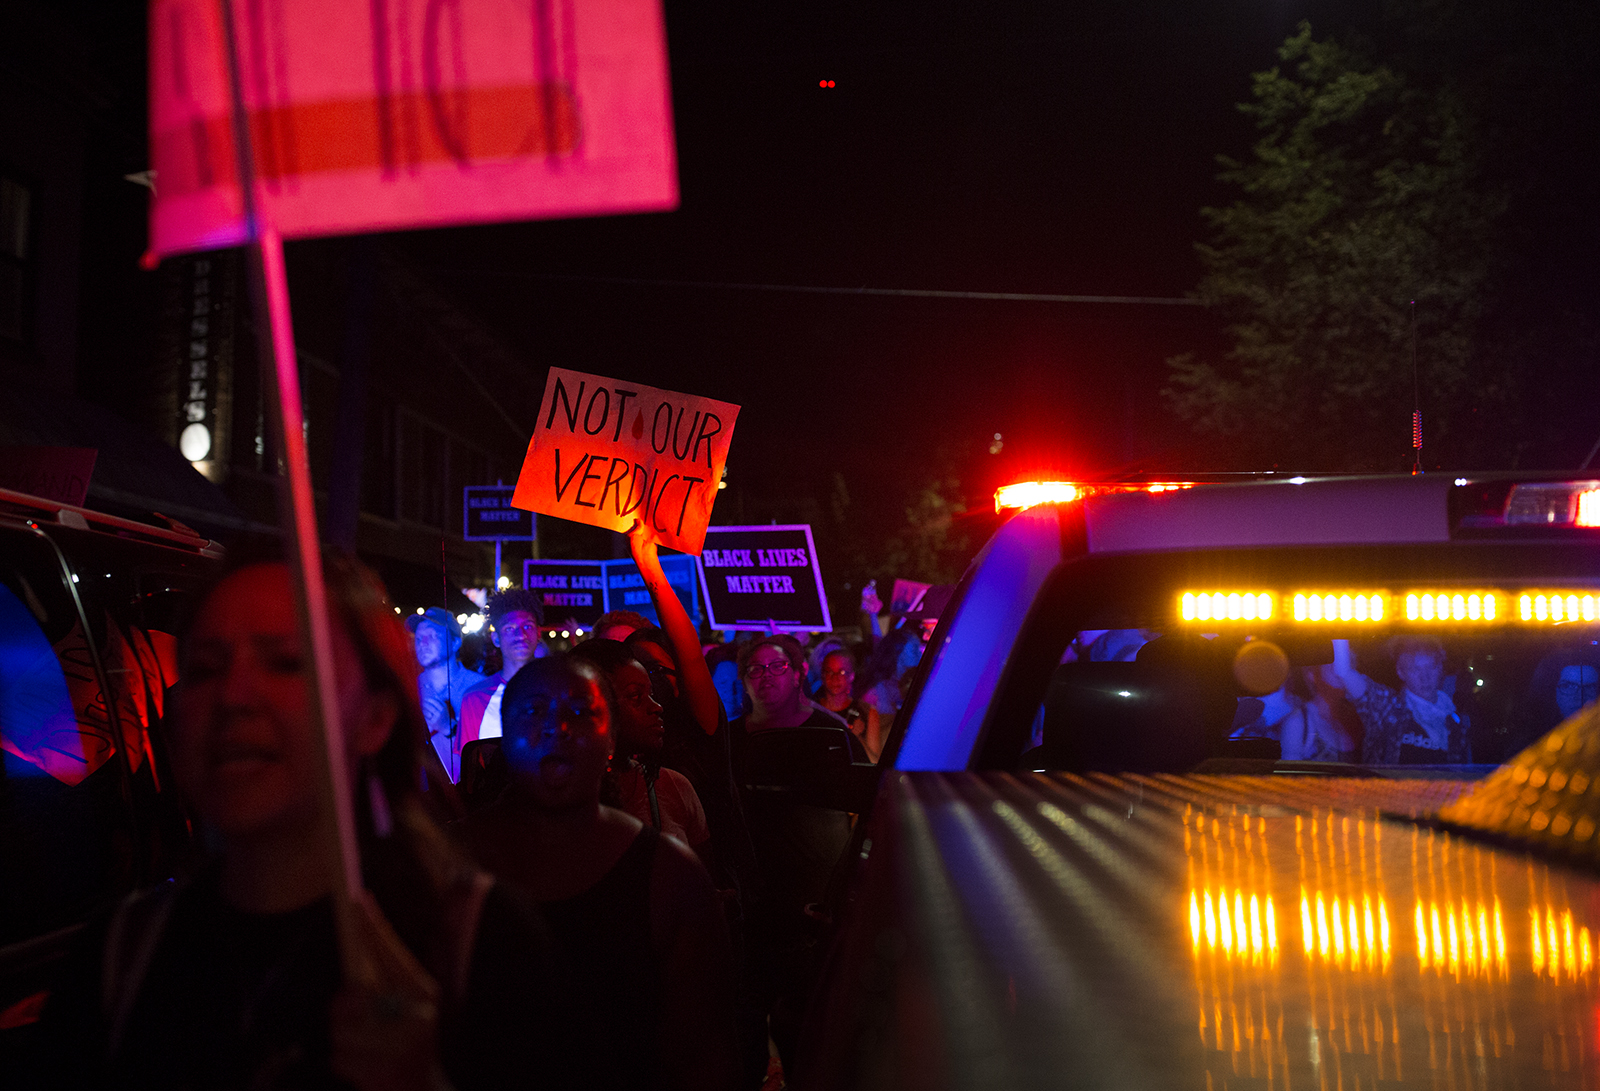 Demonstrators march through the Central West End neighborhood Sept. 15 after a judge acquitted former police officer Jason Stockley, charged with murder in the shooting death of Anthony Lamar Smith. CAROLINA HIDALGO | ST LOUIS PUBLIC RADIO